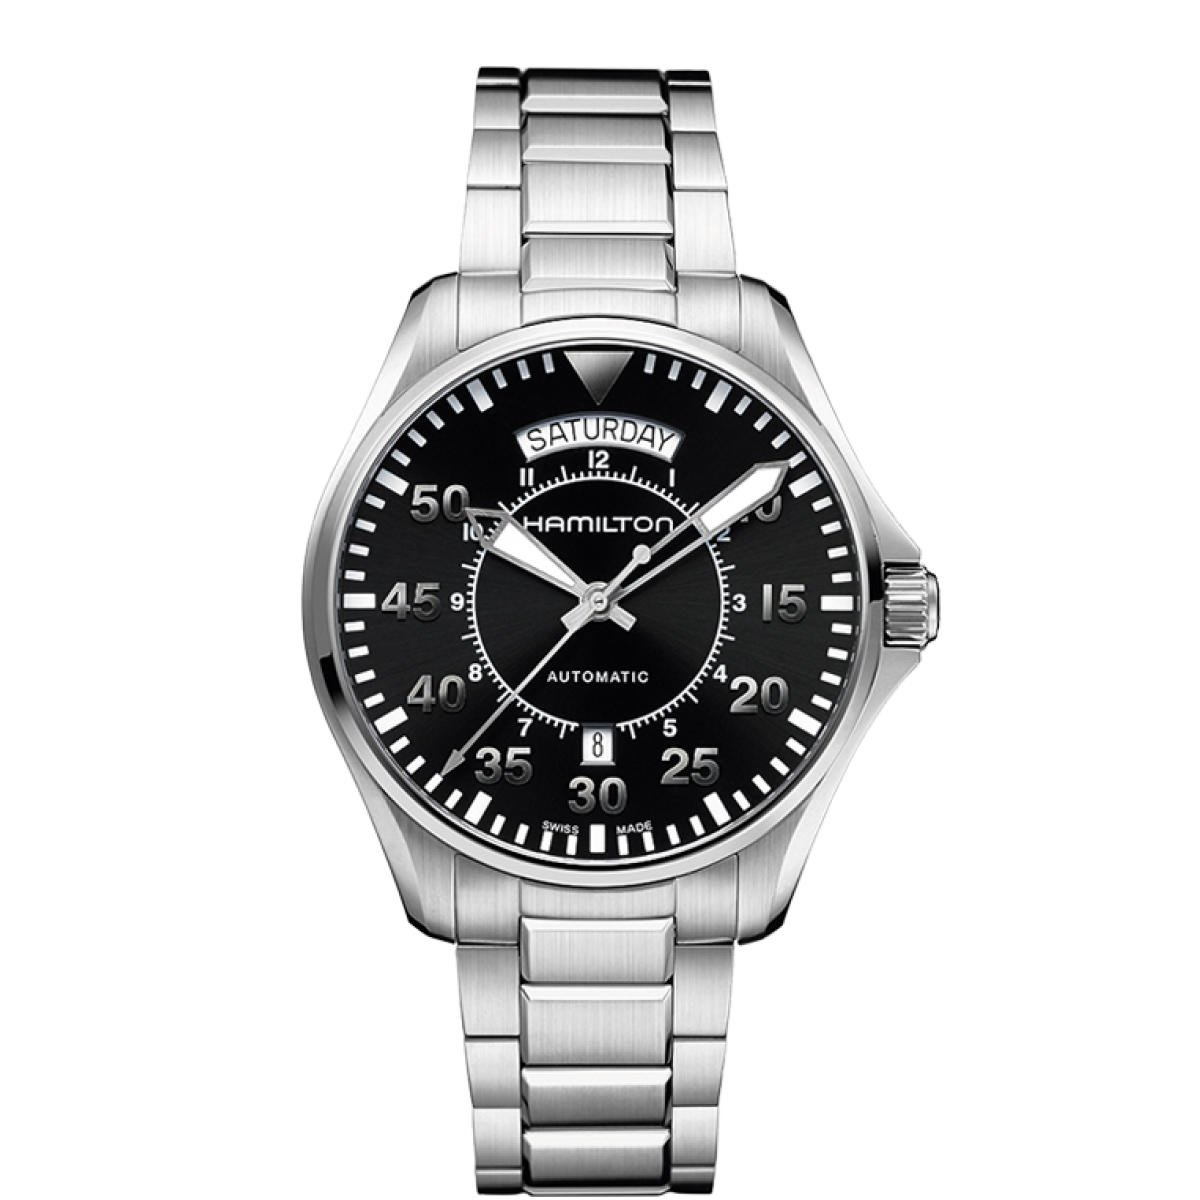 Watches in movies: who wears what in Interstellar, Kingsman and Bond